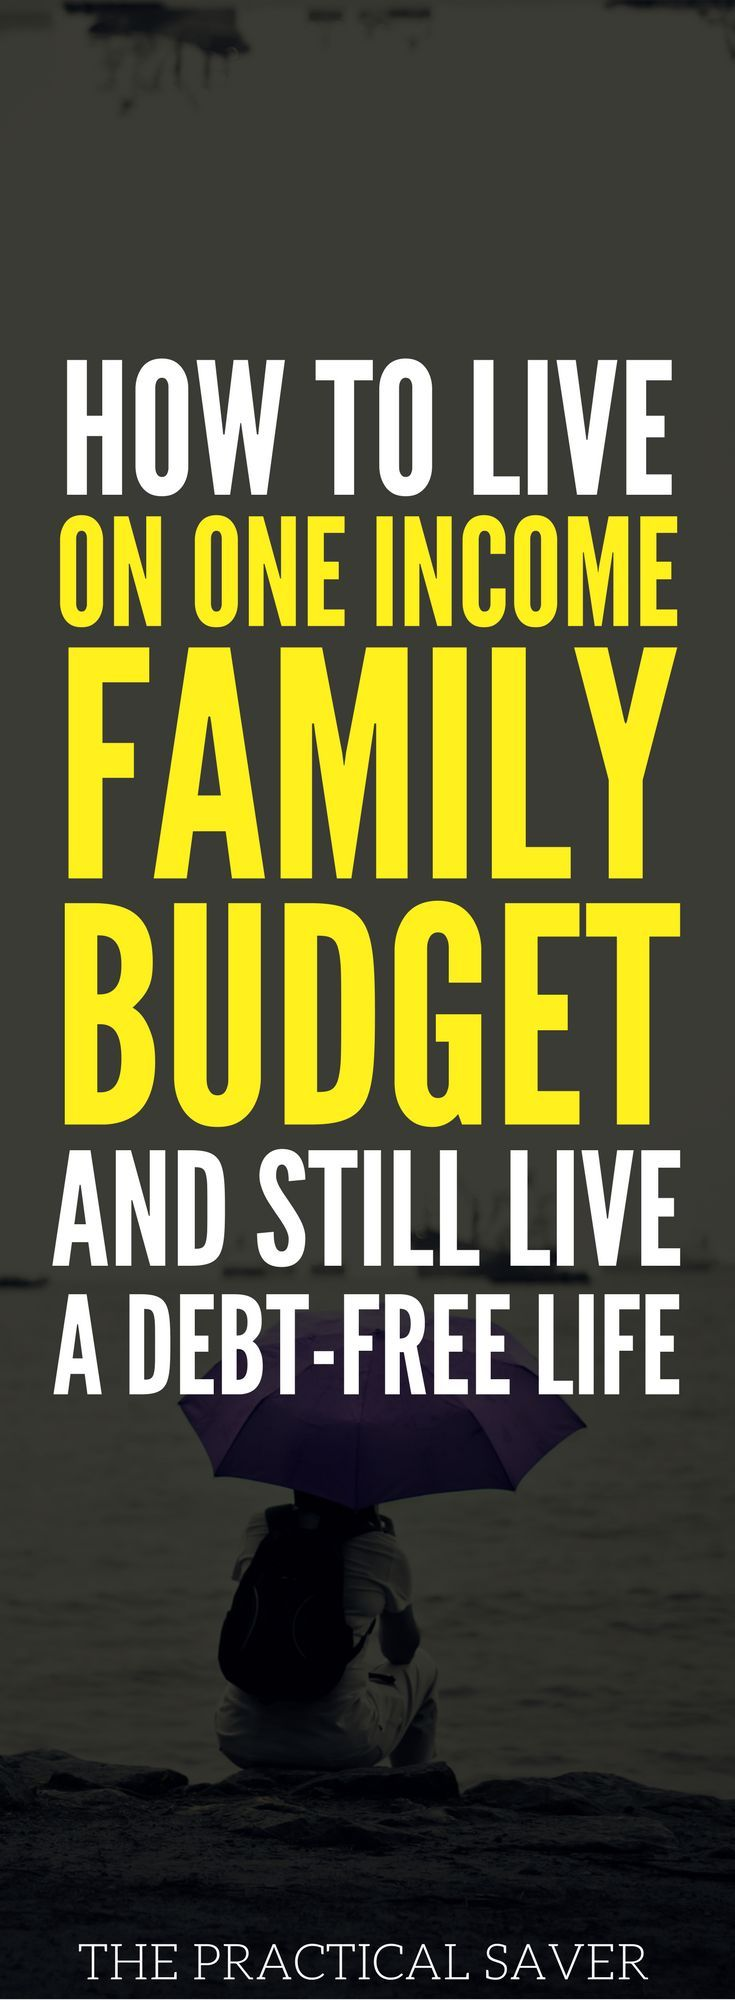 Can you be debt-free and live on one income? Yes, my family has achieved financial independence and will retire early even when we live on a single income. We don't have credit card debt. Learn the credit card tips, debt payoff management strategies, etc. to help you stay on budget. money management l how to pay off debt l investment ideas for beginners #investment #money #familybudget #personalfinance #FinancialFreedom